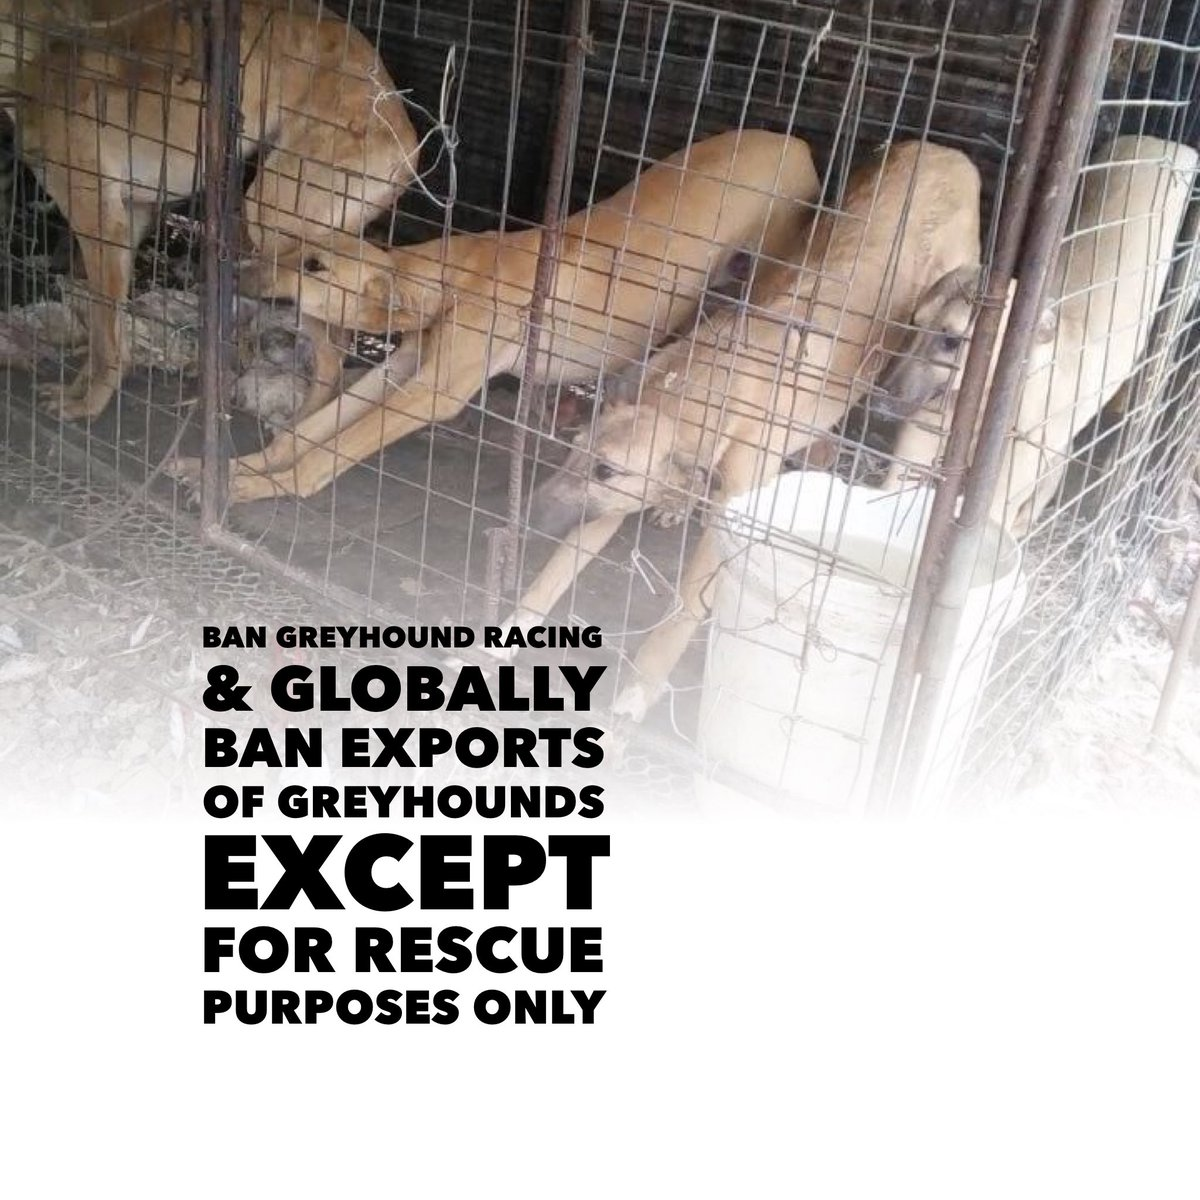 24 Online Protest https://t.co/hdyZRFqLNk  #BanGreyhoundRacing #Ireland #uk  #BAN #GREYHOUNDEXPORTS With the #EXCEPTION of #RESCUE #Purposes Only #StopExportationOfGreyhoundsToAsia  #StopGreyhoundExportsToPakistan @rickygervais @PeterEgan6 @0RonnieLee0 https://t.co/KMn5ociHap